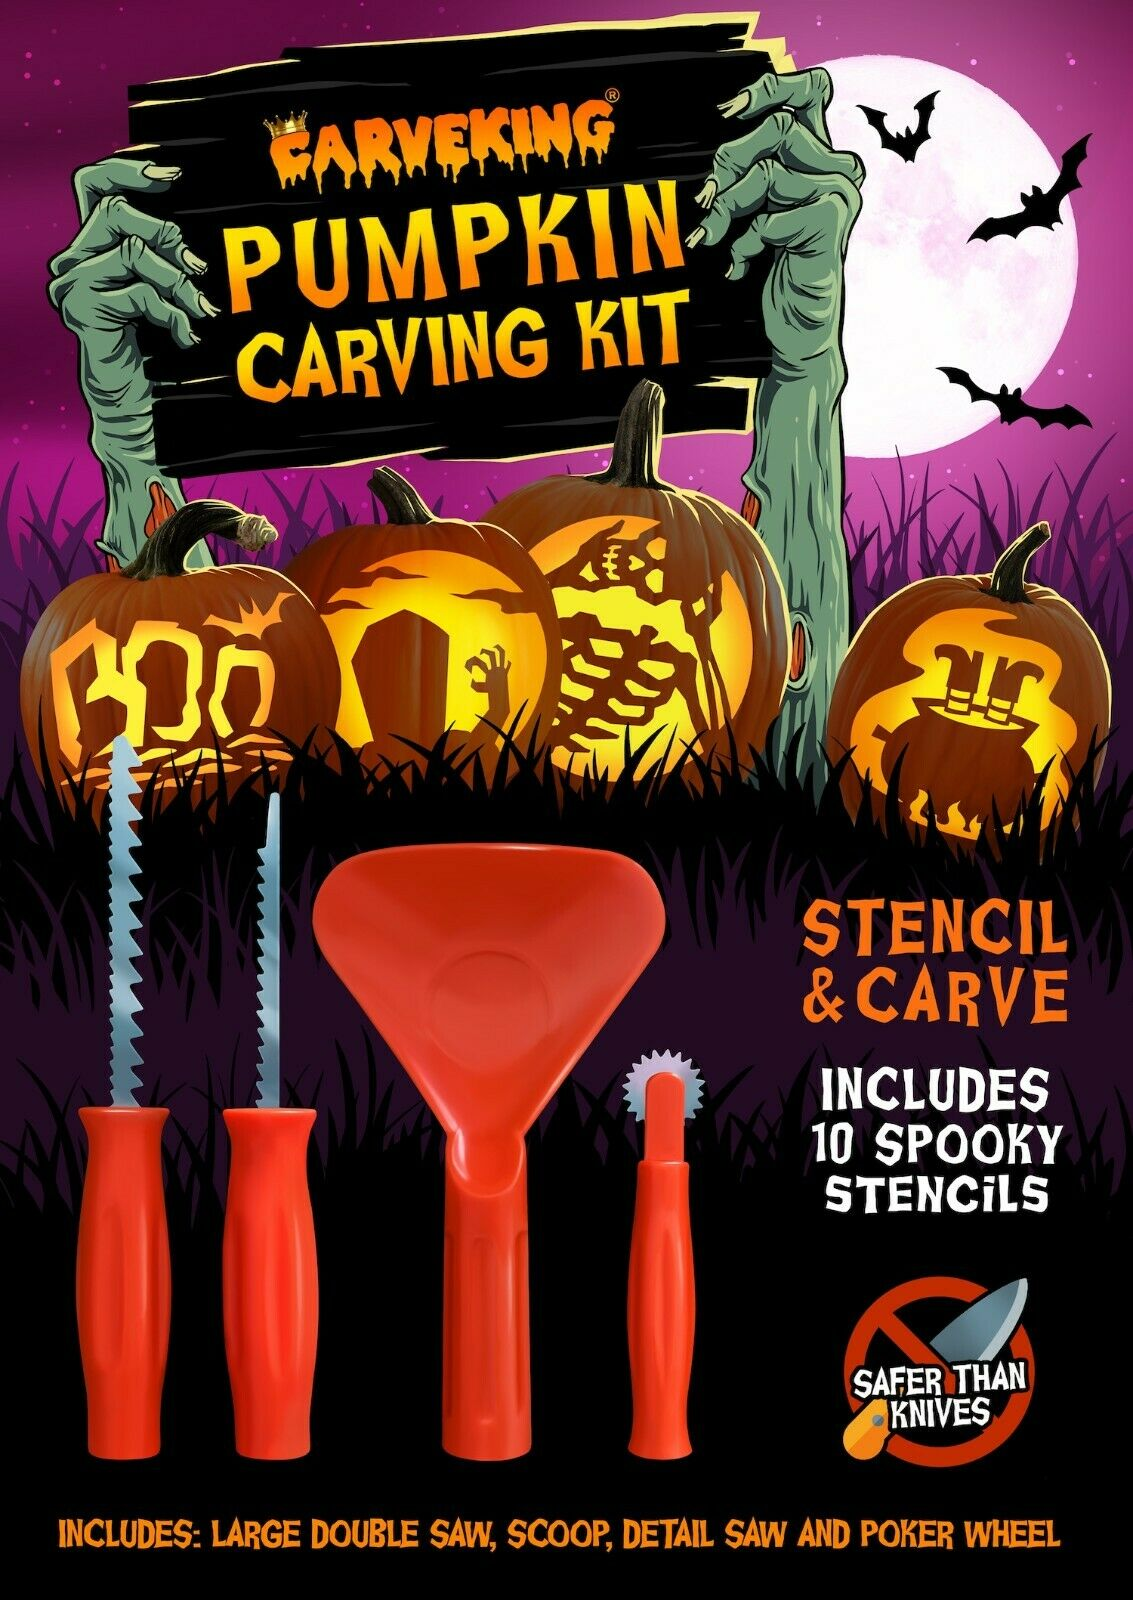 Pumpkin Carving Kit with 10 Stencils (Stencil & Carve by CarveKing)